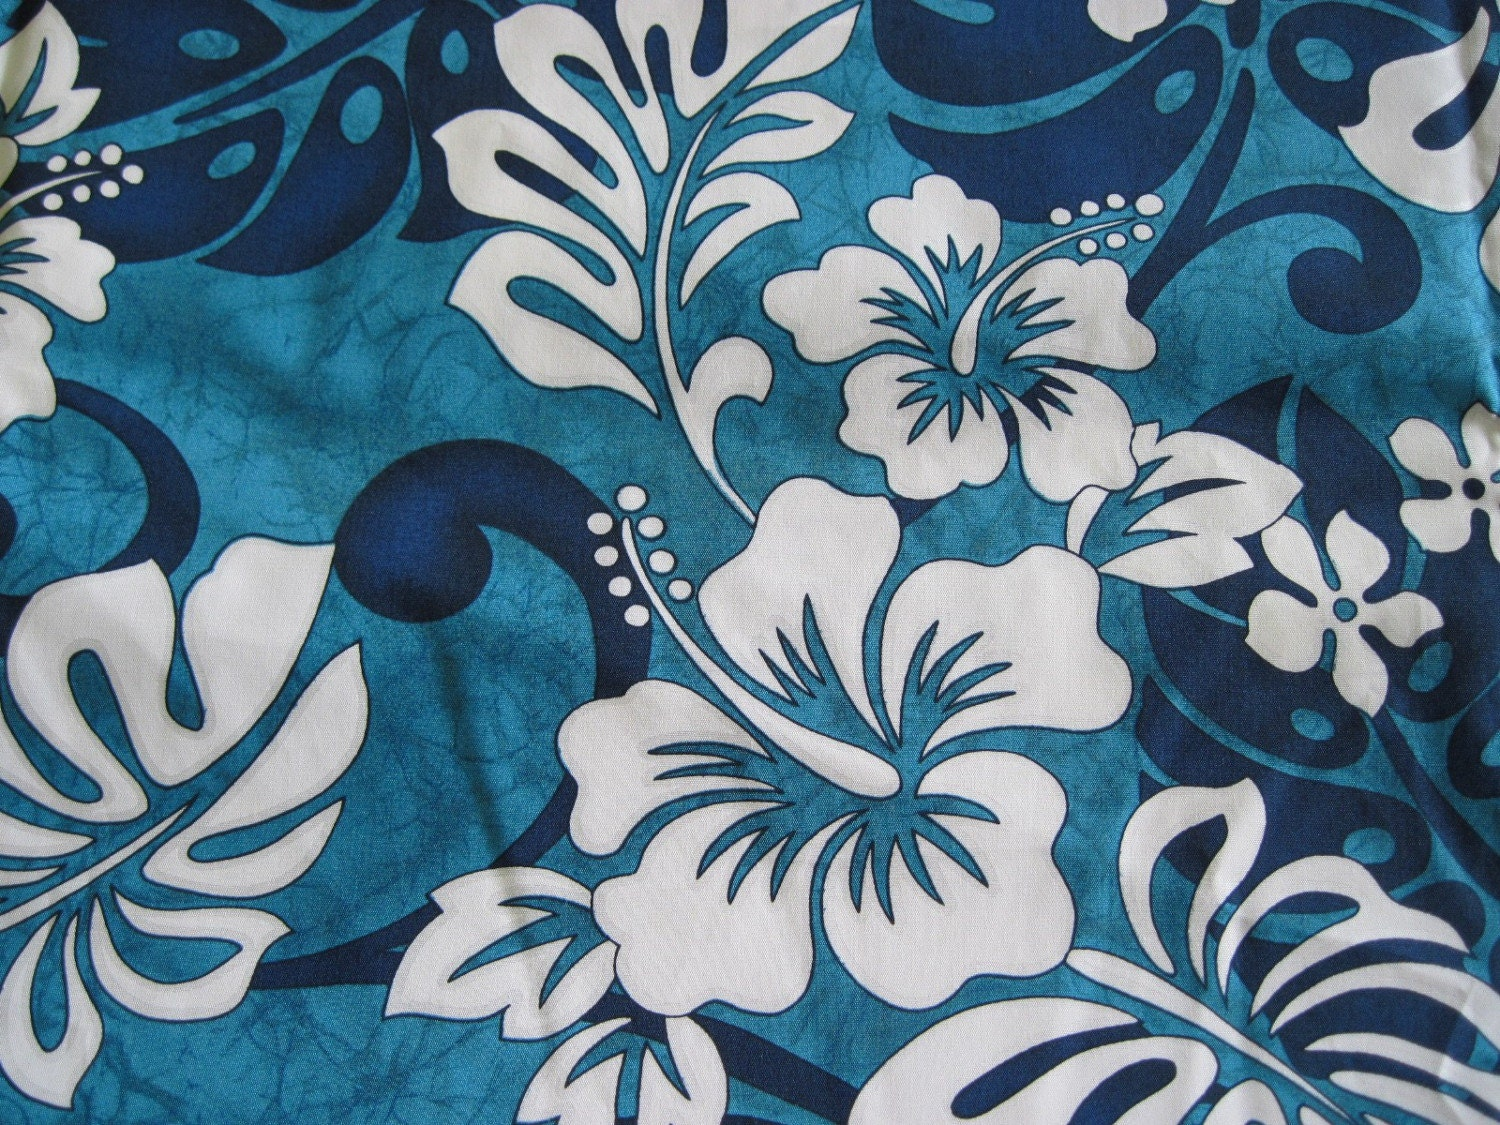 Blue White And Turquoise Hawaiian Print Fabric